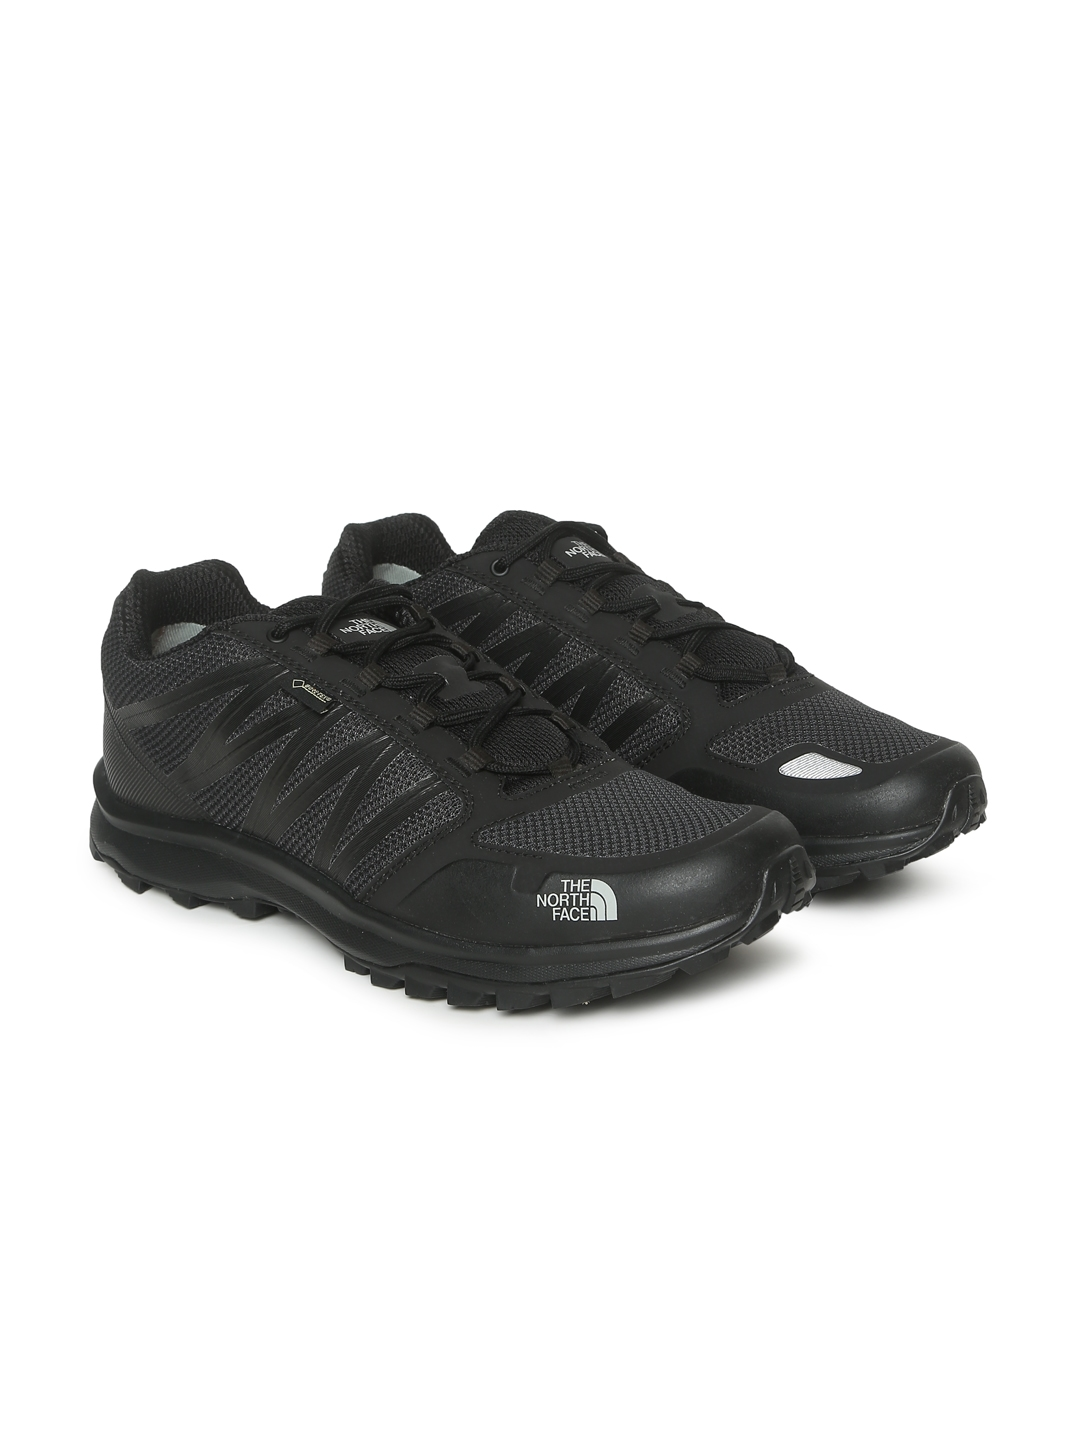 4b85a7768 The North Face Men Black Solid Waterproof LITEWAVE FASTPACK GTX Hiking Shoes